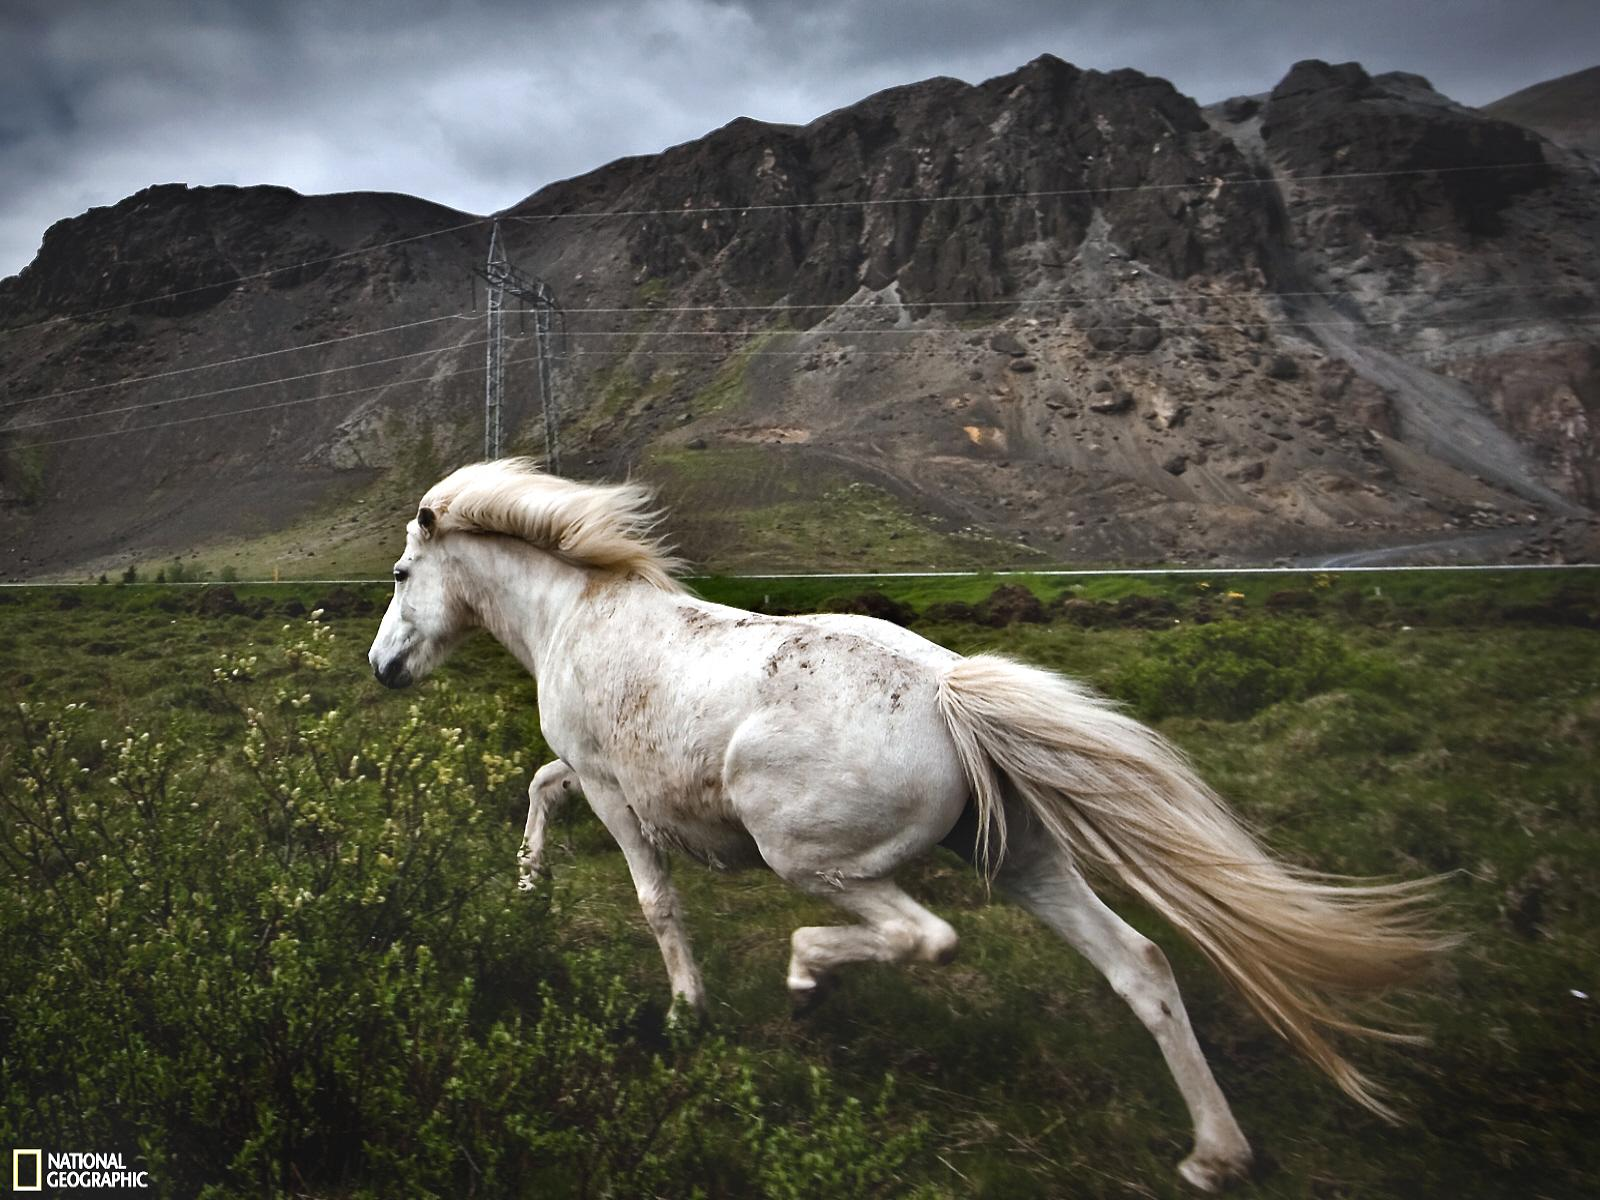 Great Wallpaper Horse National Geographic - 05x-smaller-brothers-28-02-11  Gallery_604334.jpg?w\u003d1600\u0026h\u003d1200